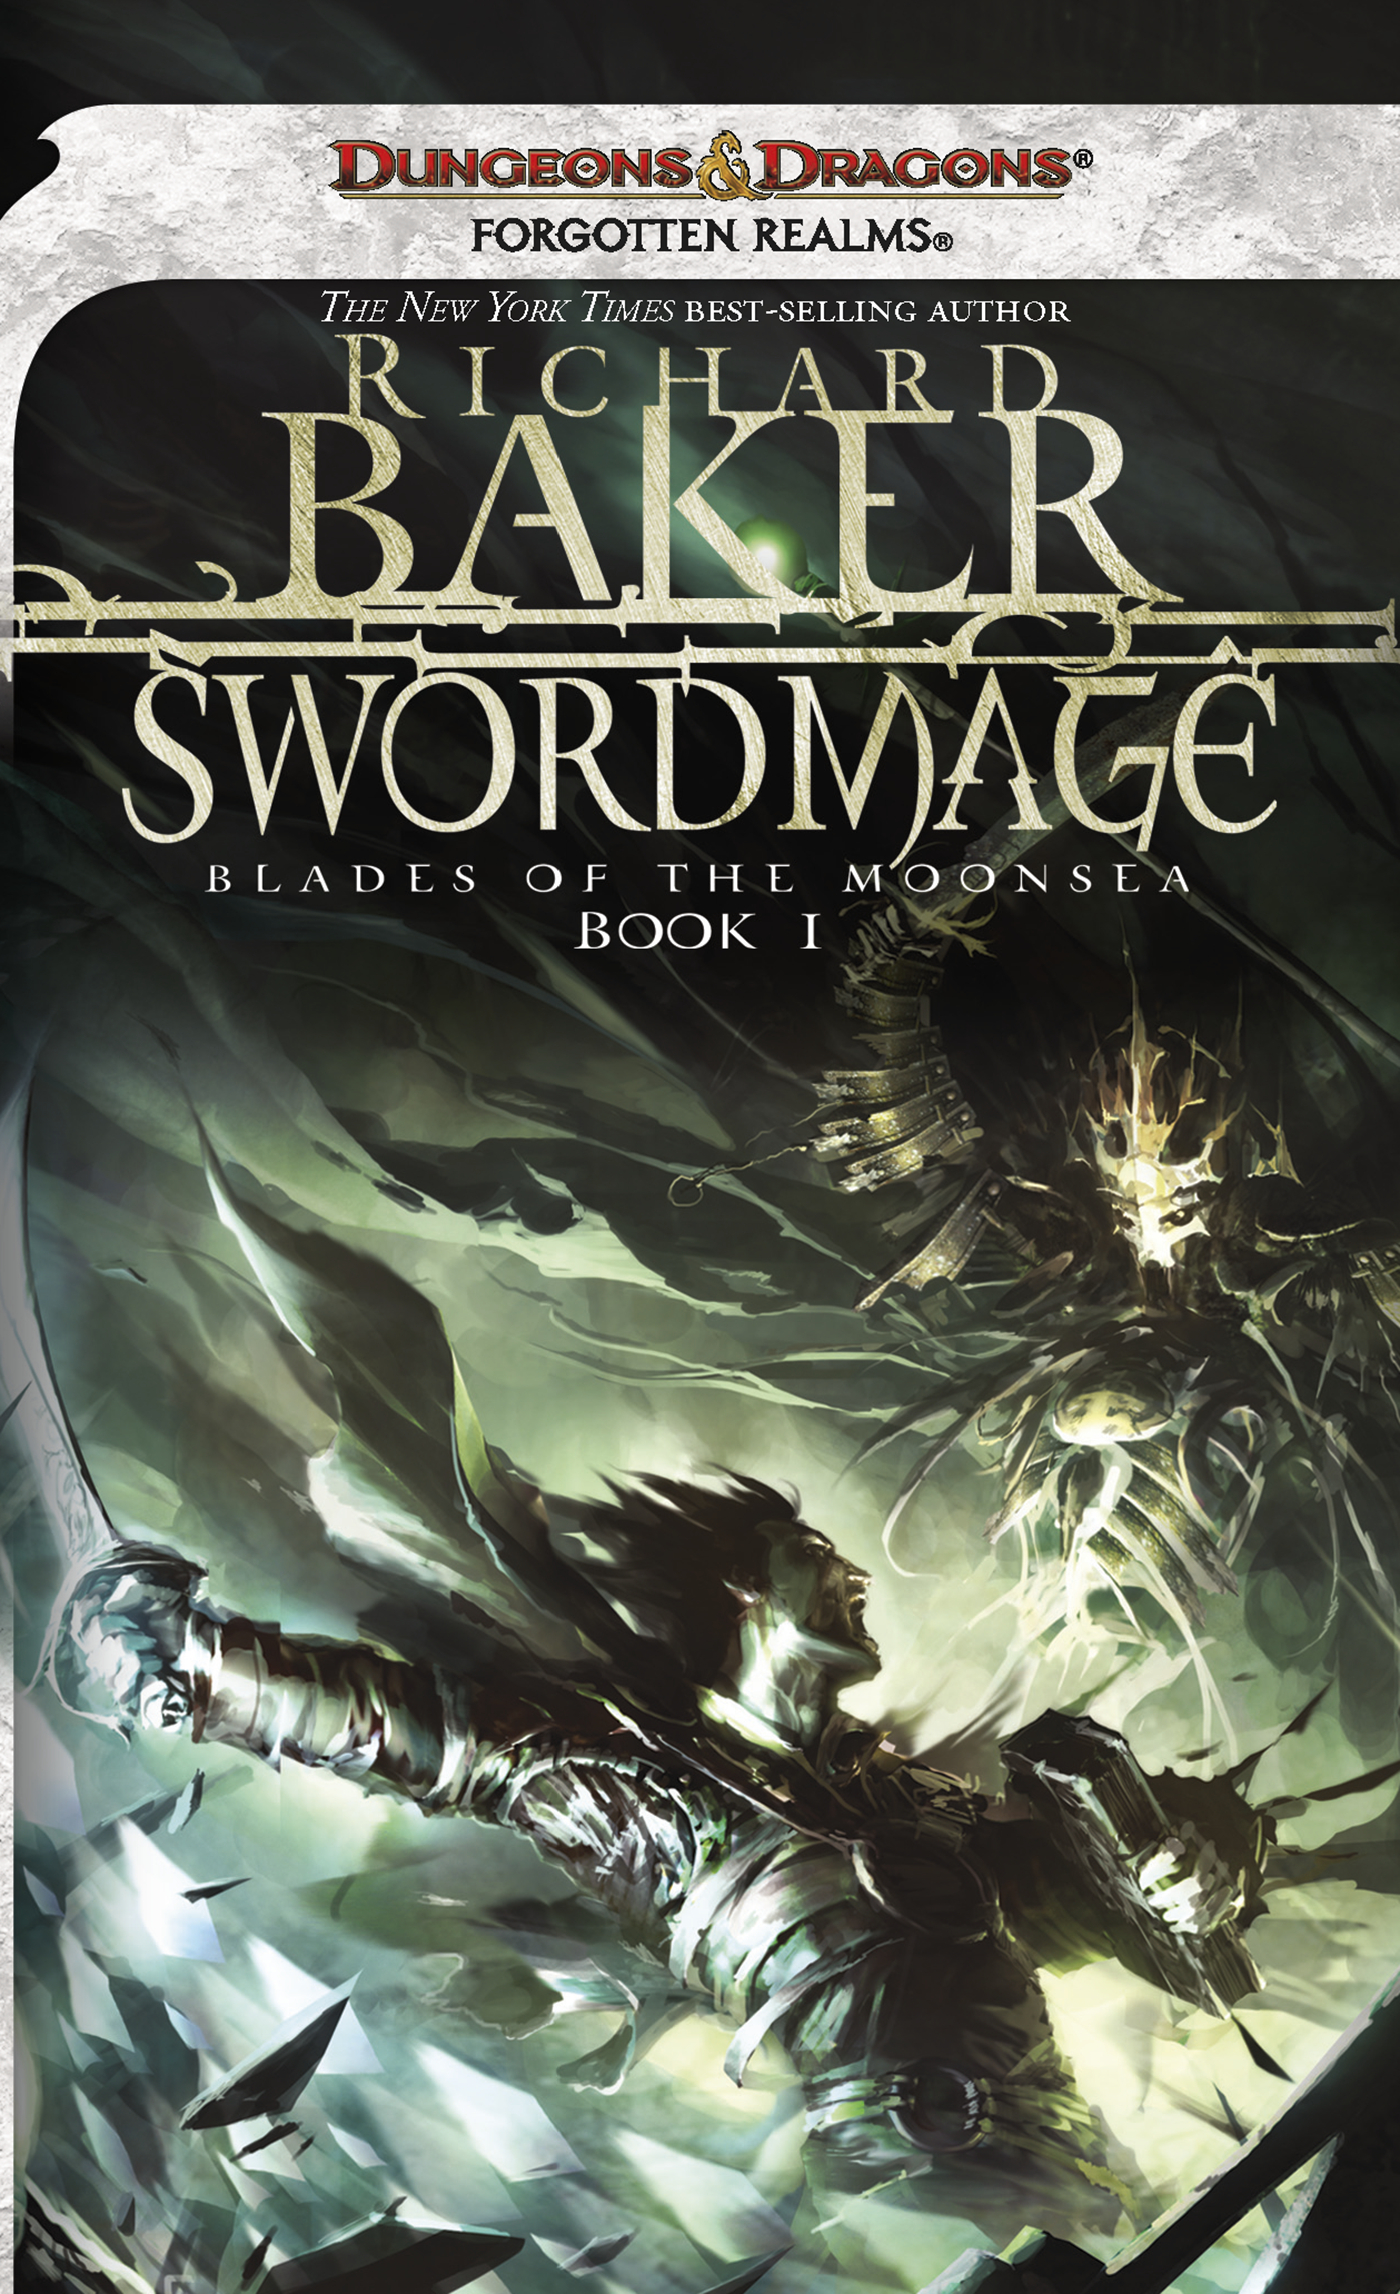 File:Swordmage Cover.jpg